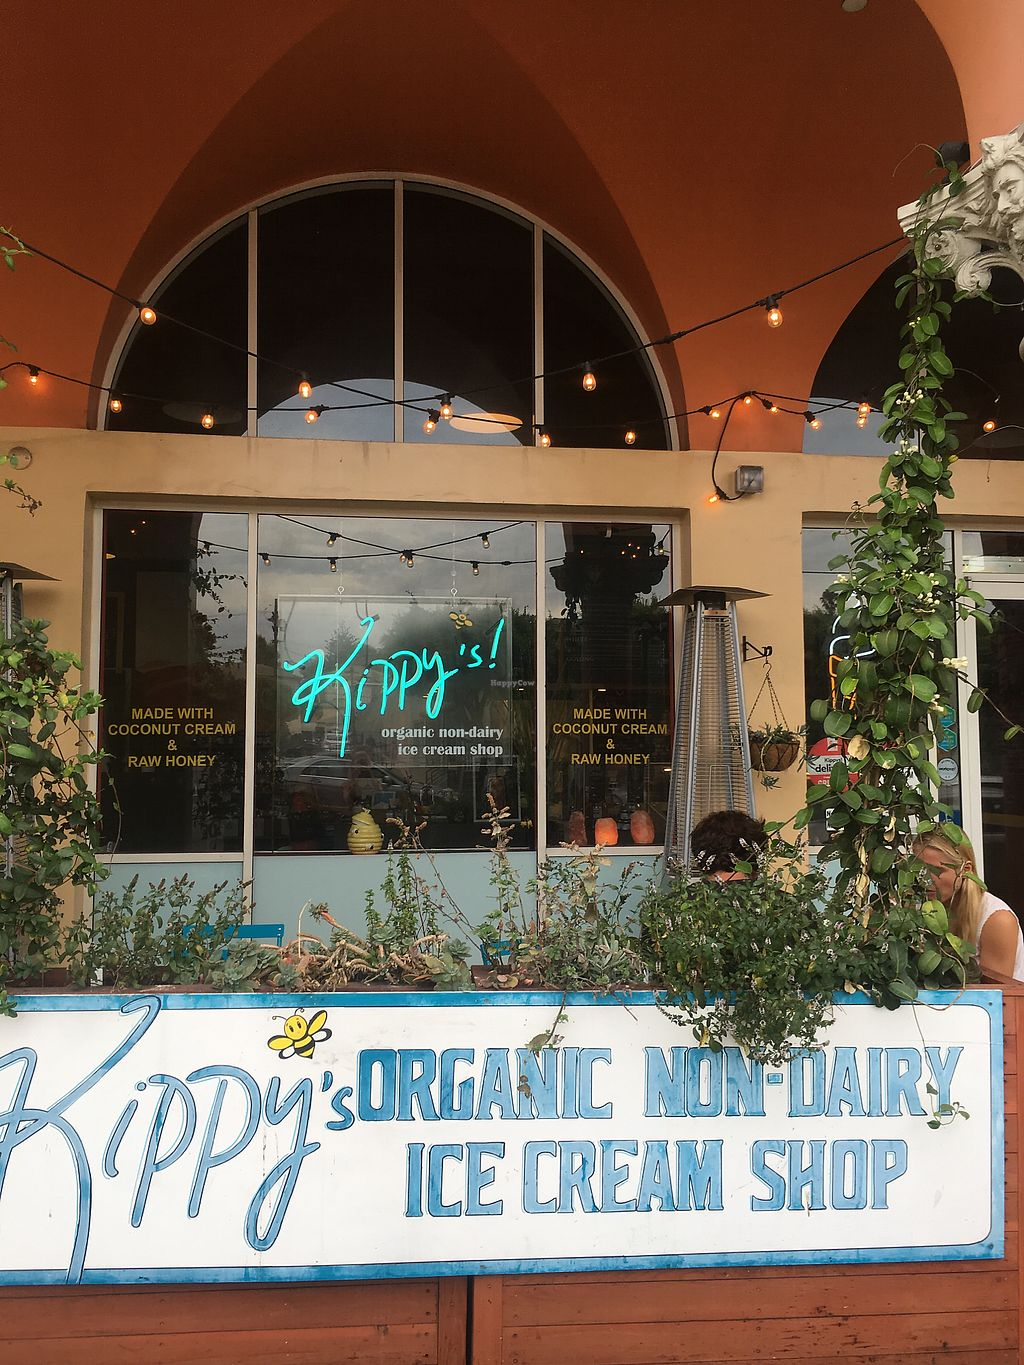 """Photo of Kippy's Ice Cream Shop  by <a href=""""/members/profile/KimMartin"""">KimMartin</a> <br/>store front <br/> August 3, 2017  - <a href='/contact/abuse/image/45313/288129'>Report</a>"""